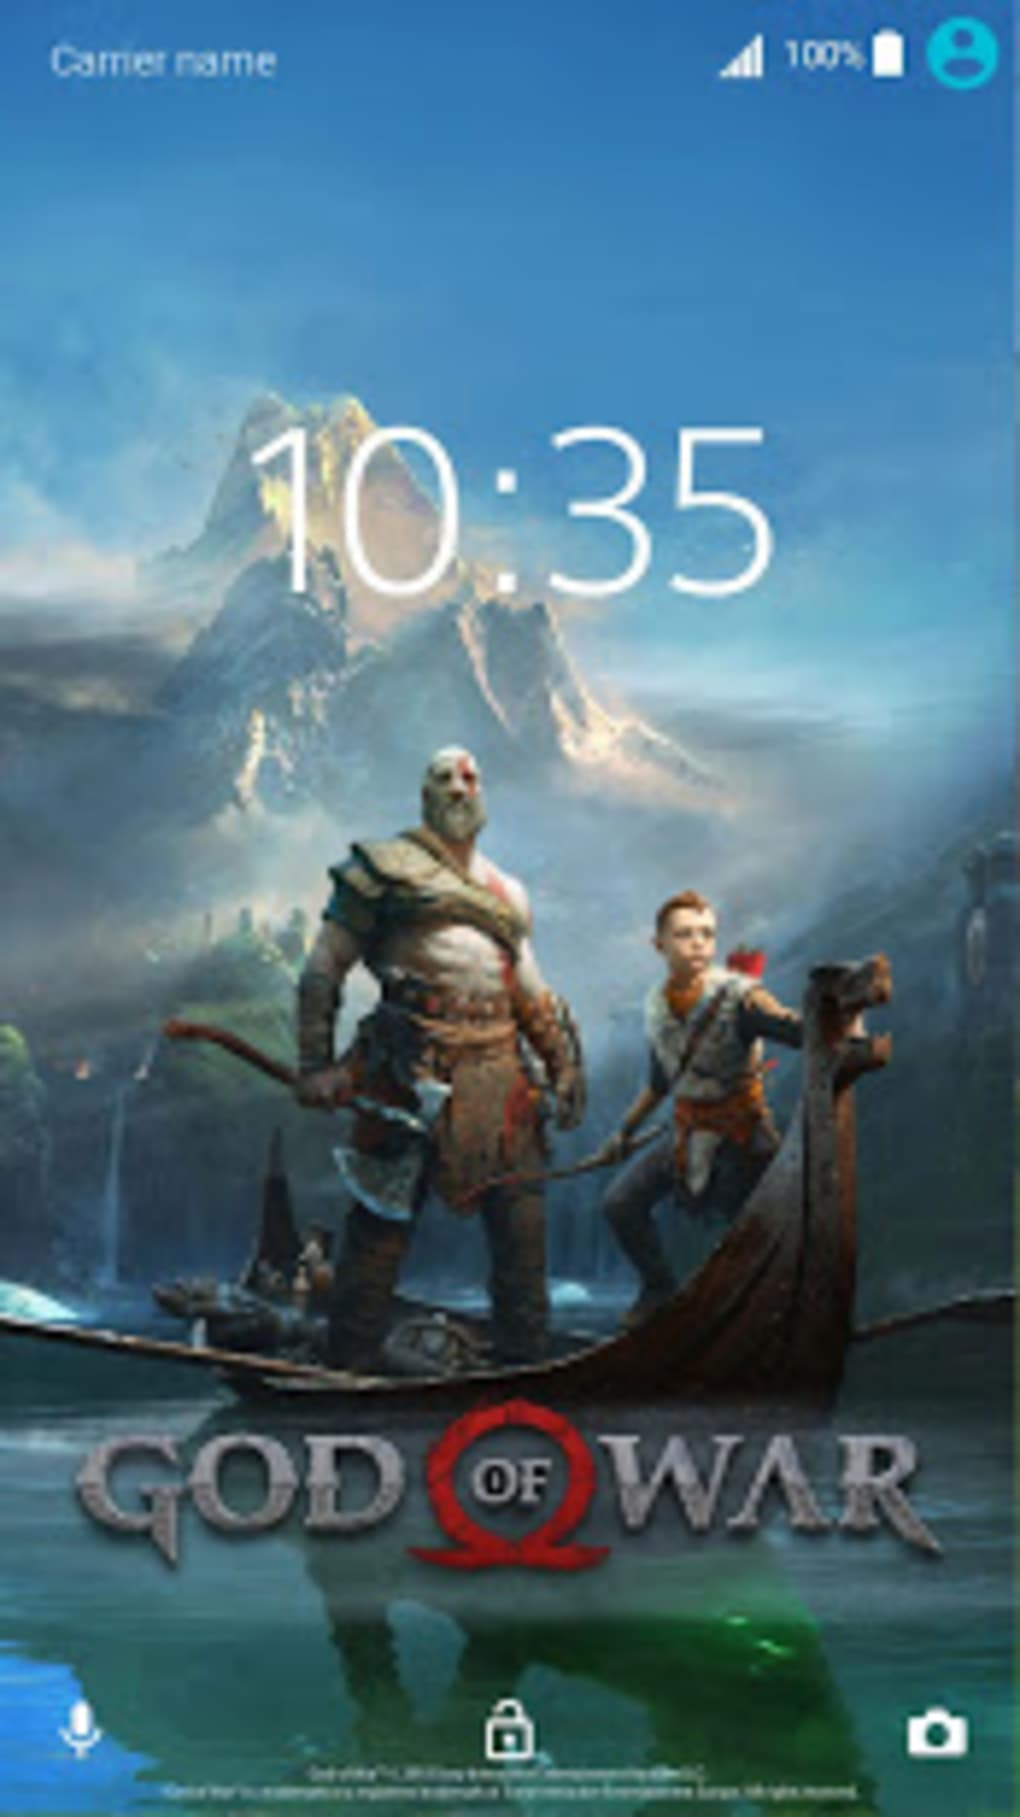 Xperia God Of War Theme Apk For Android Download